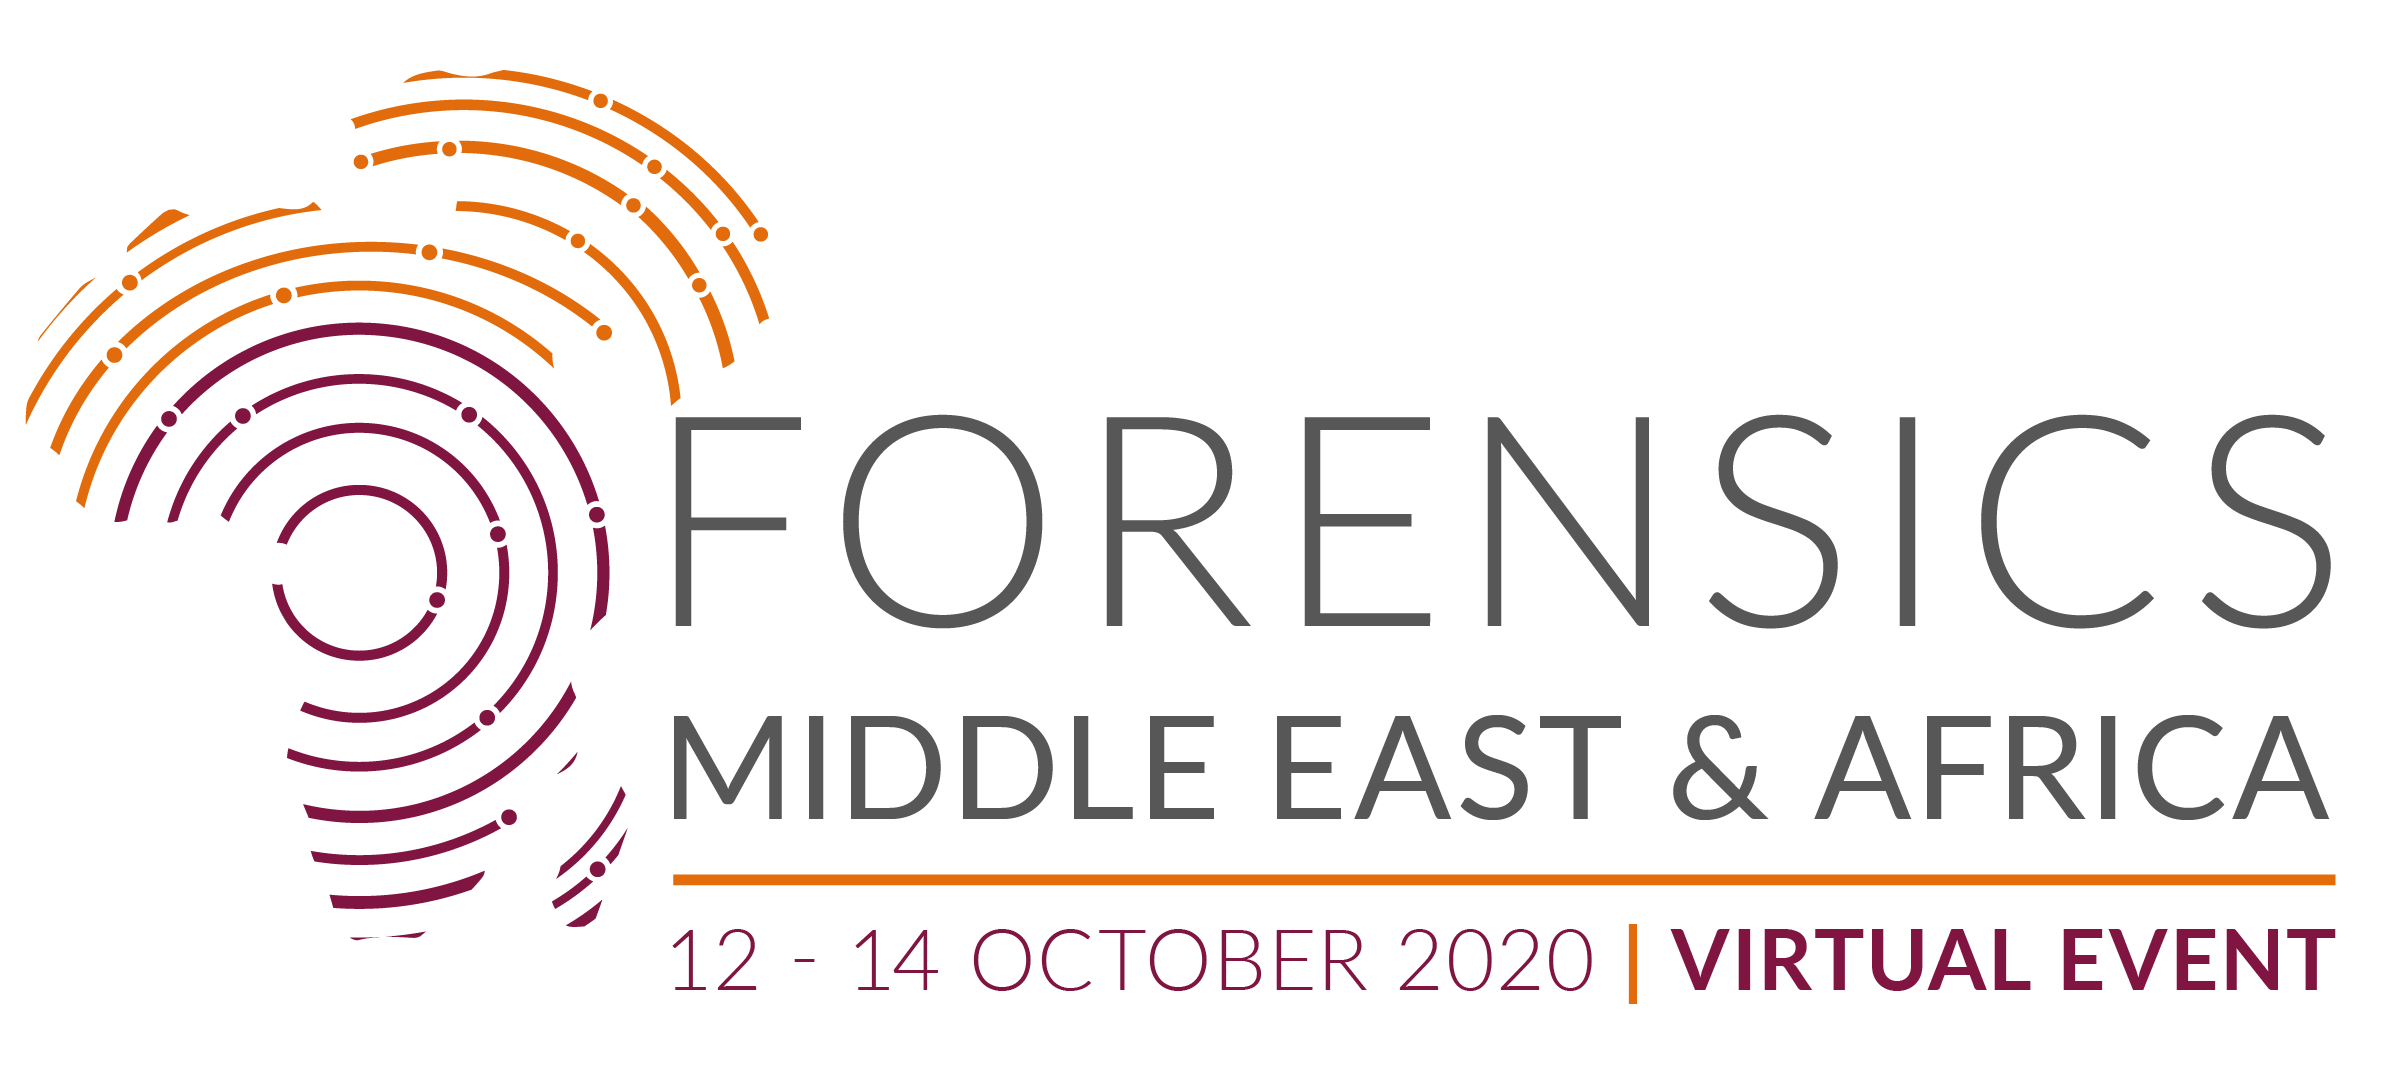 Welcome Forensics Middle East Africa 2020 The Must Attend Event For The Entire Forensic Sector In The Middle East Africa